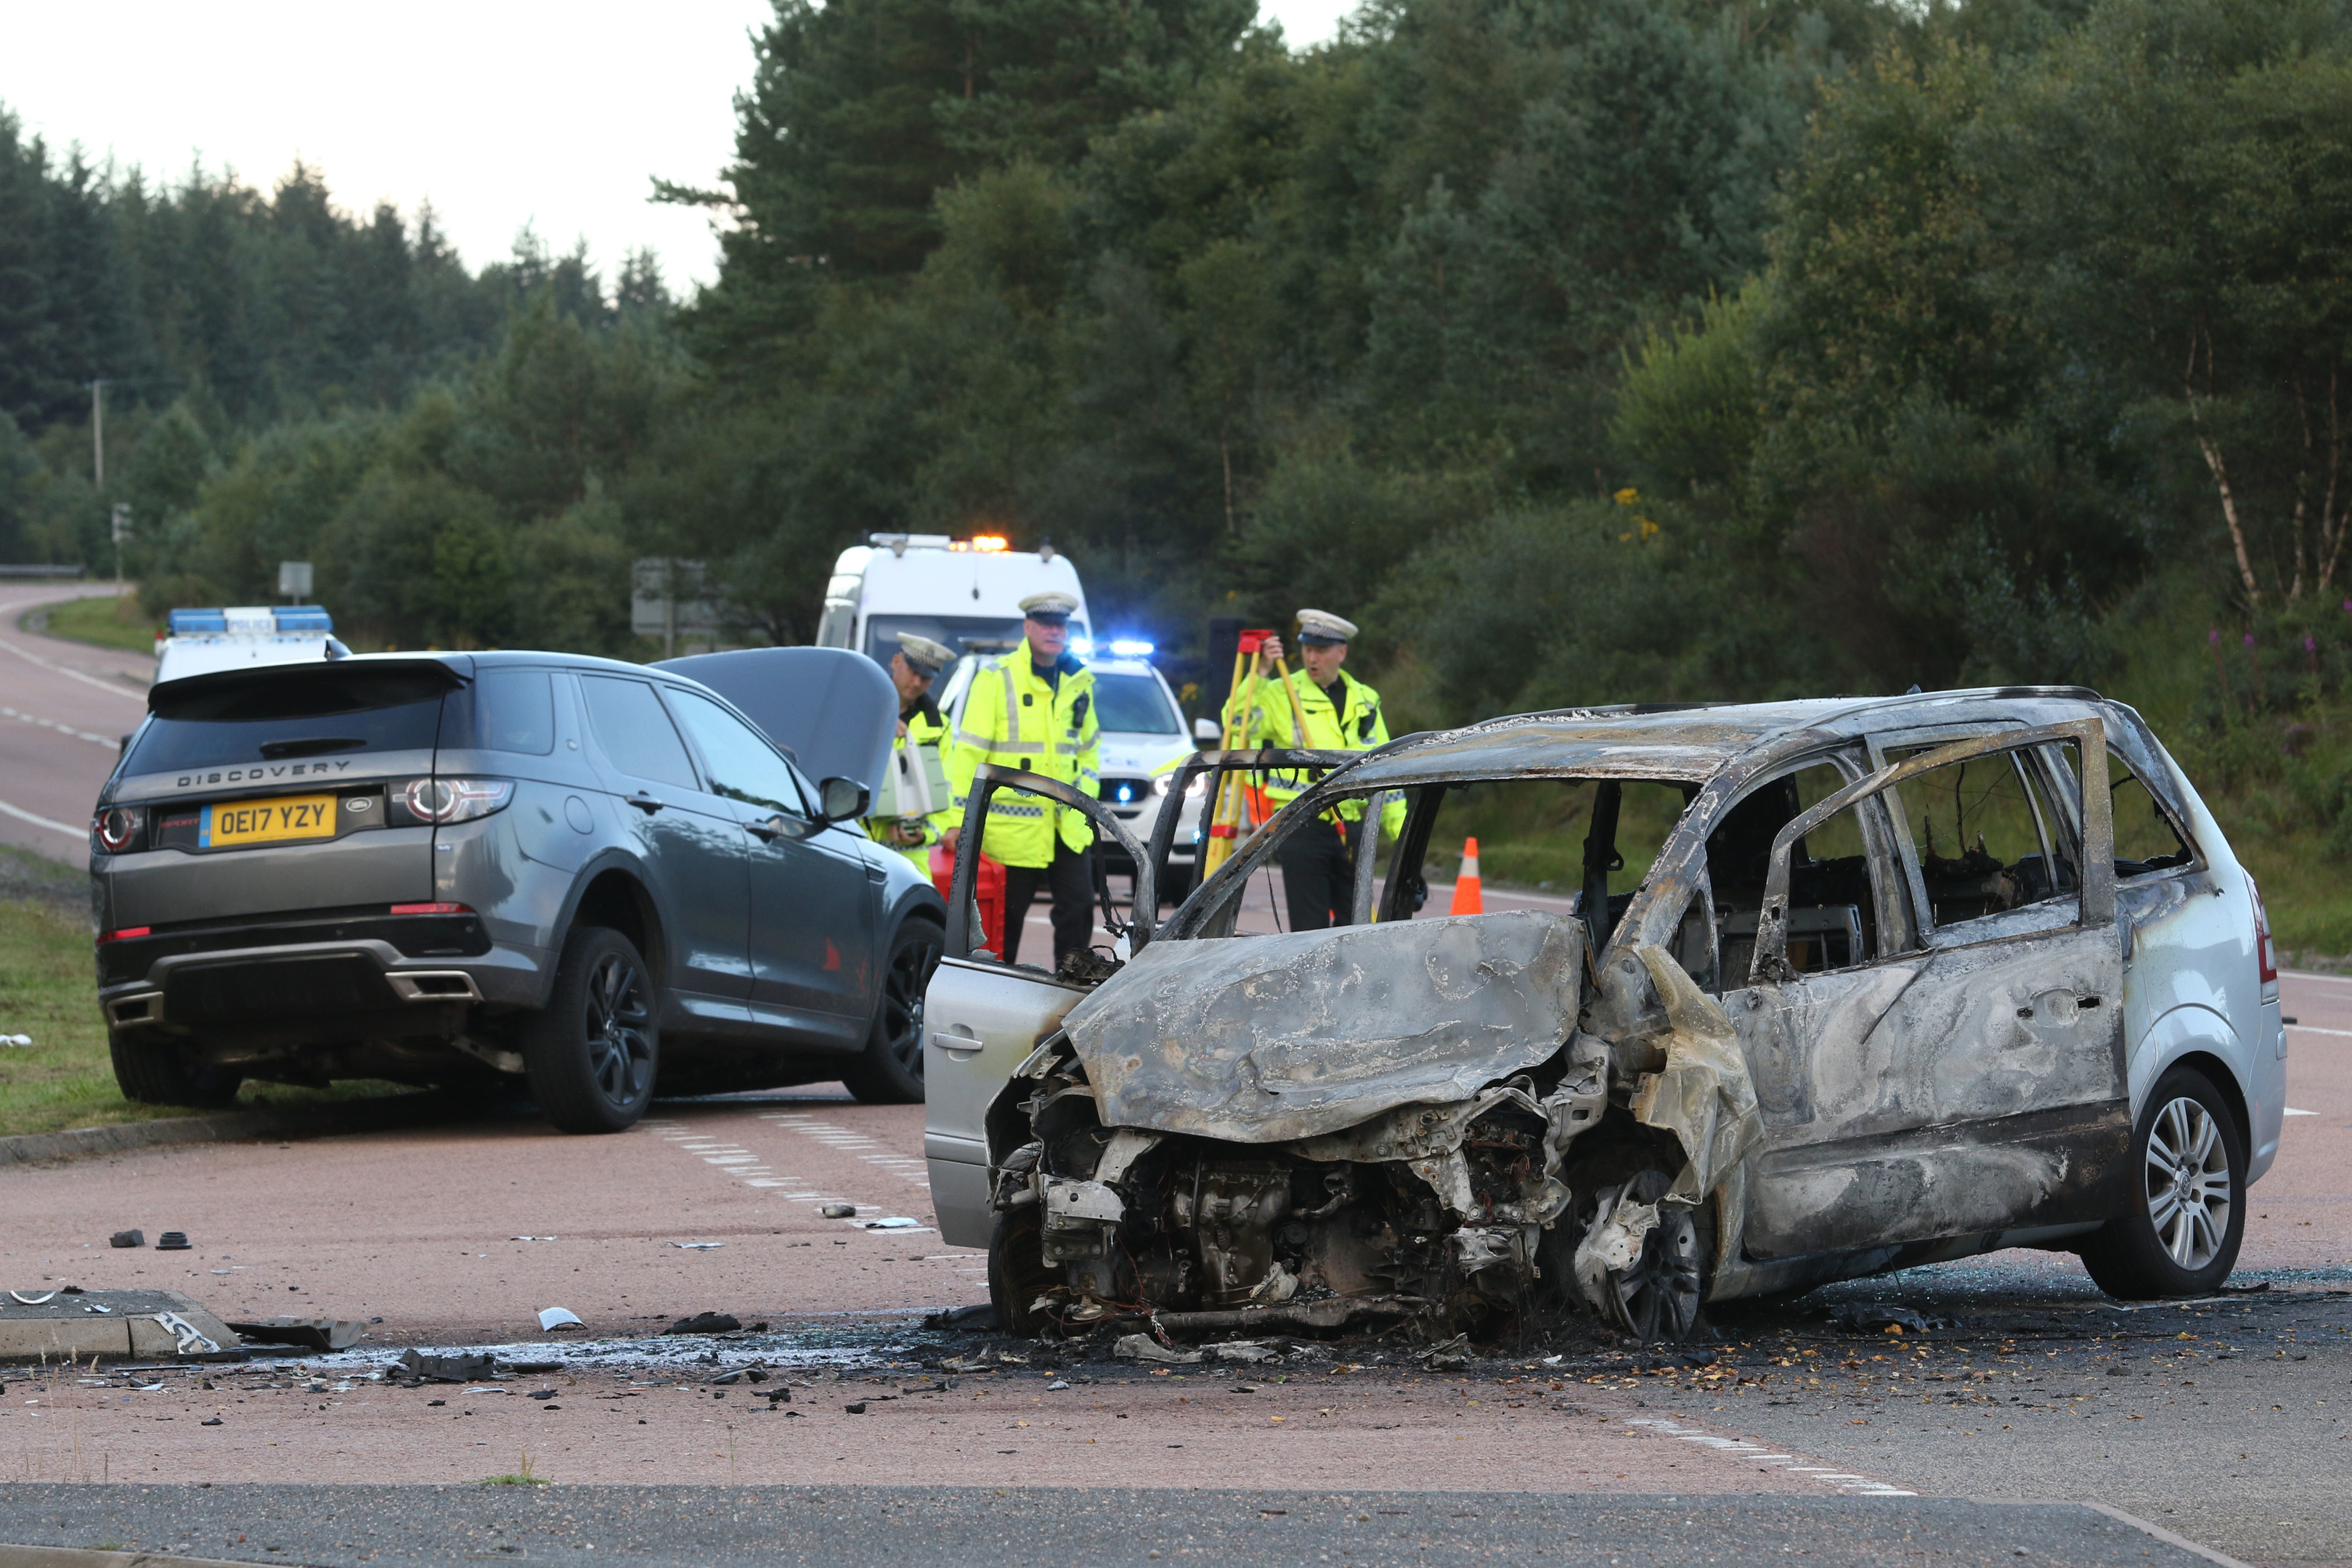 26 August 2017: Scene of an RTC on the A9 at Ralia near Newtonmore.